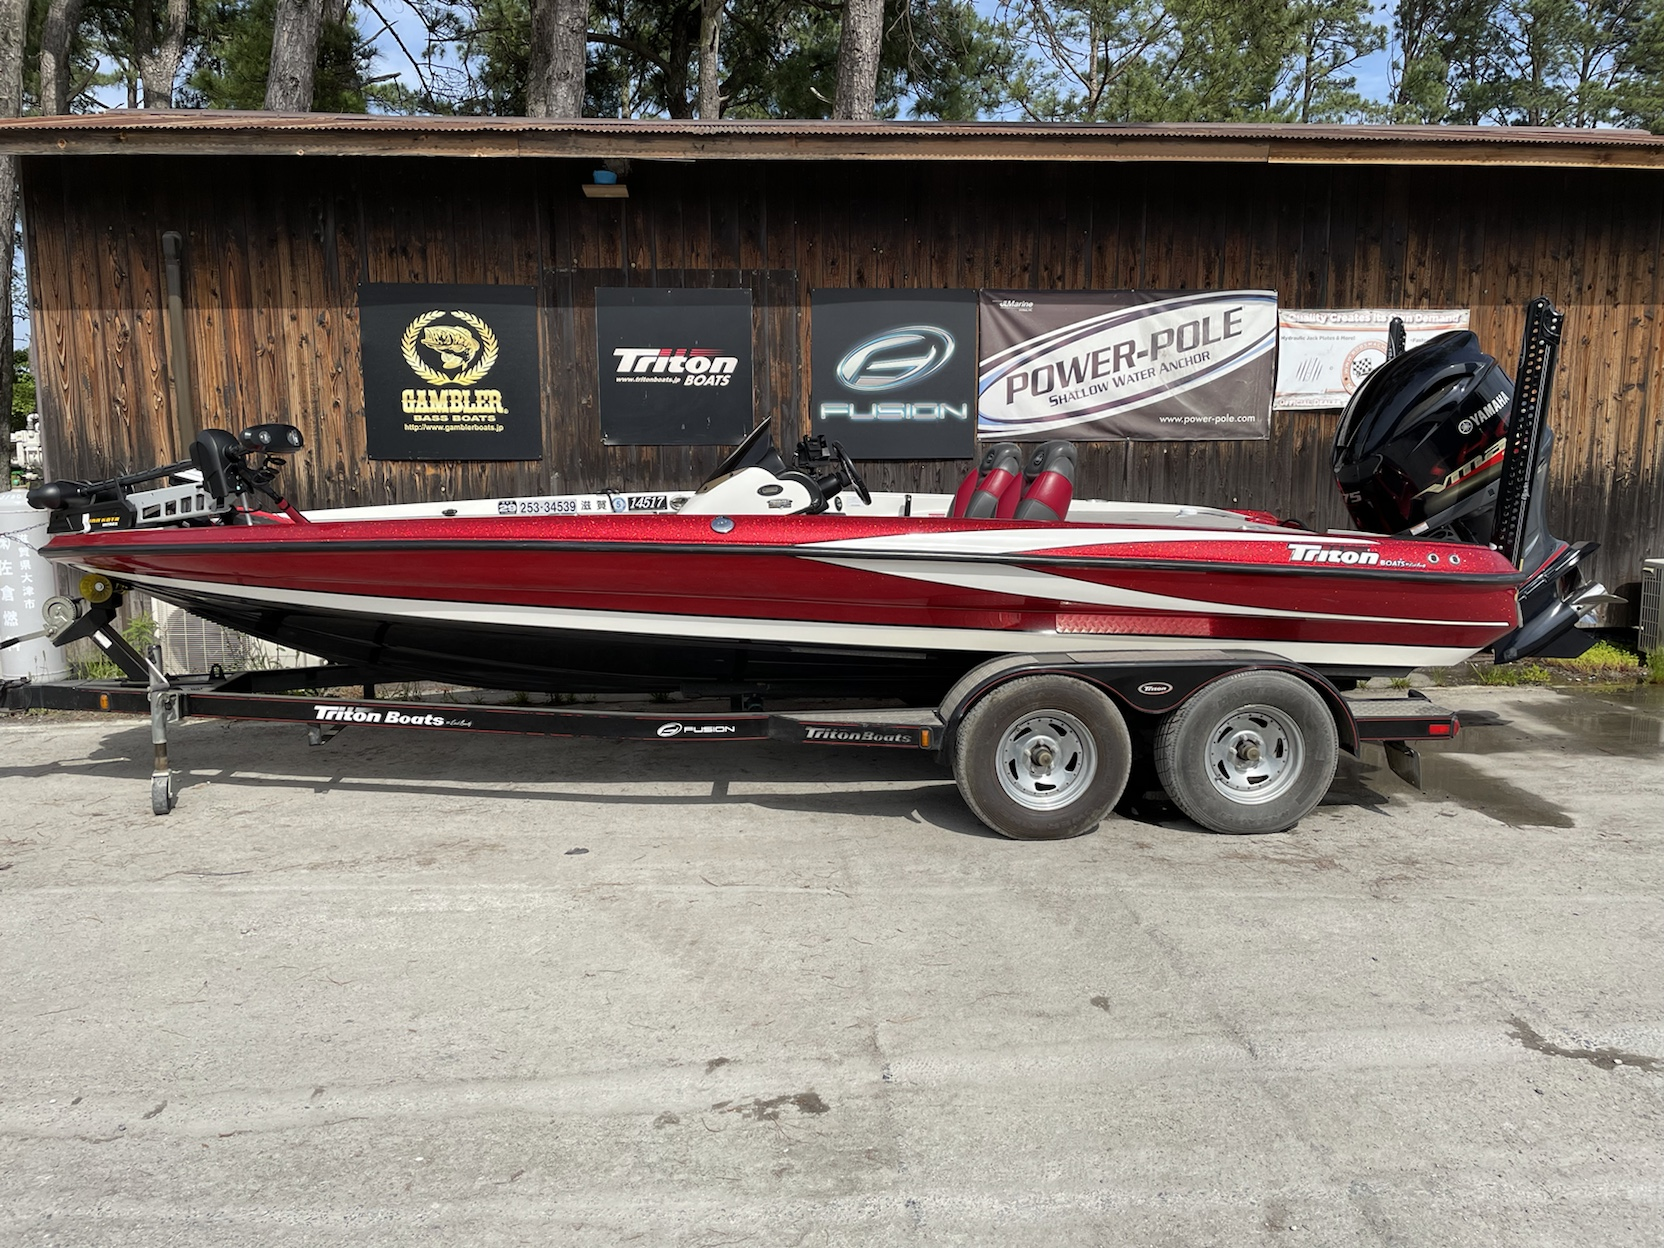 SOLD OUT '09 Triton Boats 19X3 with SHO275